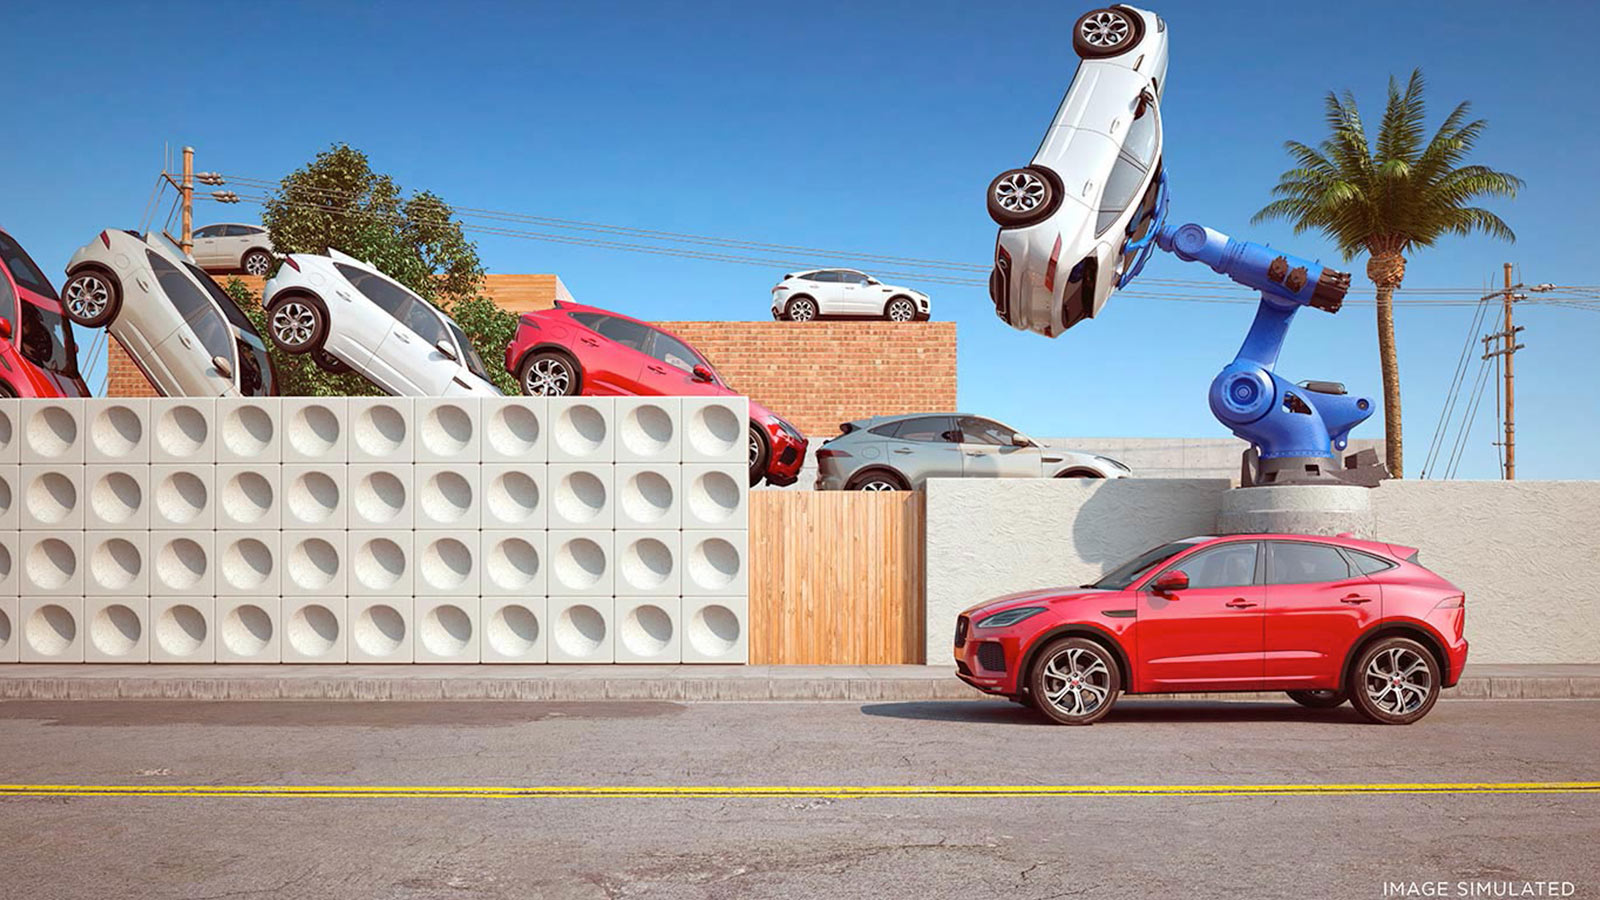 A surreal twist on the conventional assembly line by digital artist Chris Labrooy.